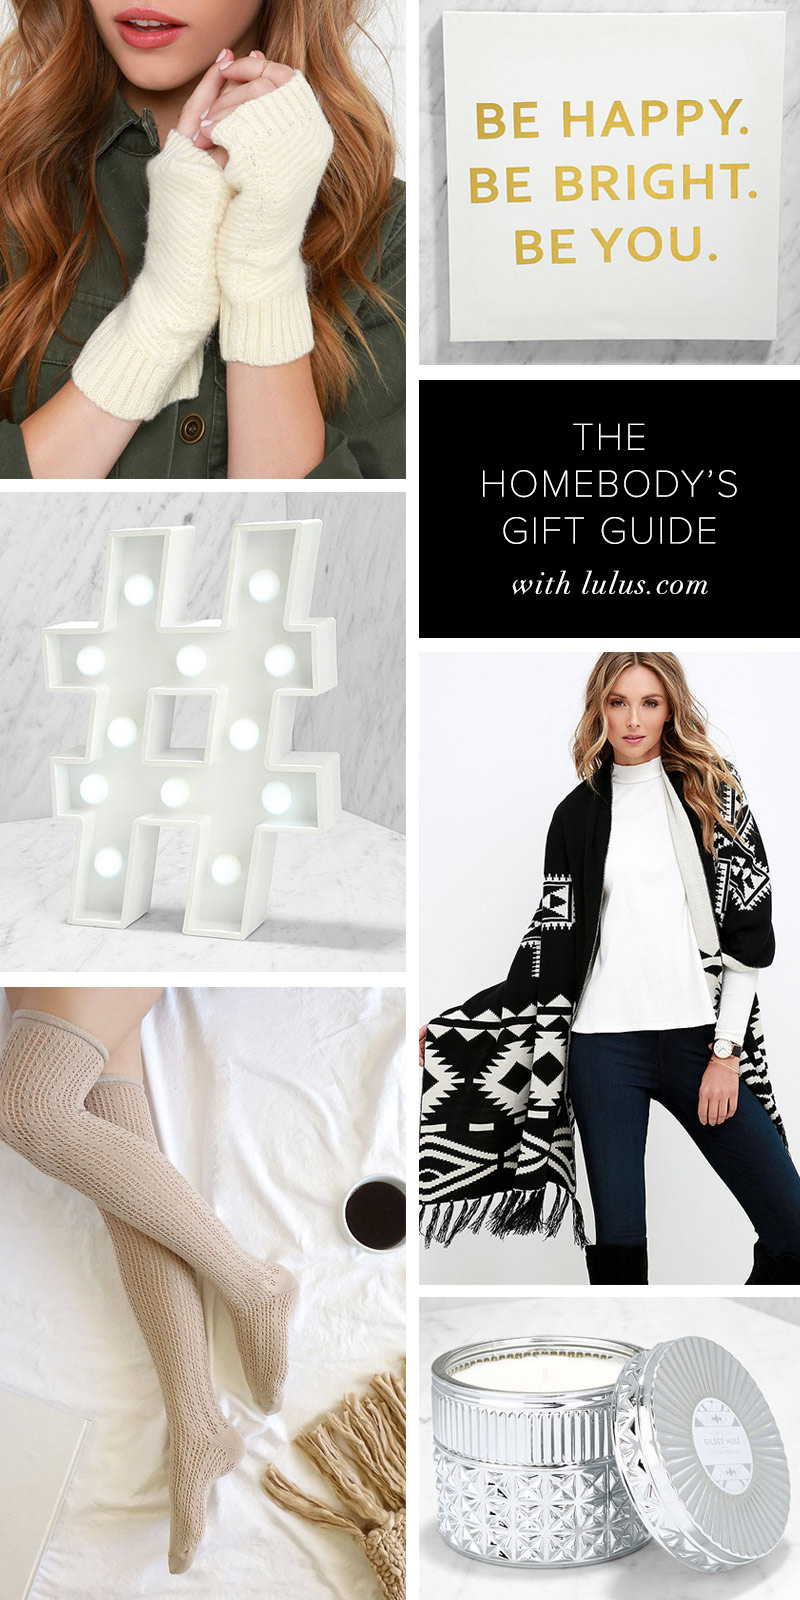 the homebody's gift guide